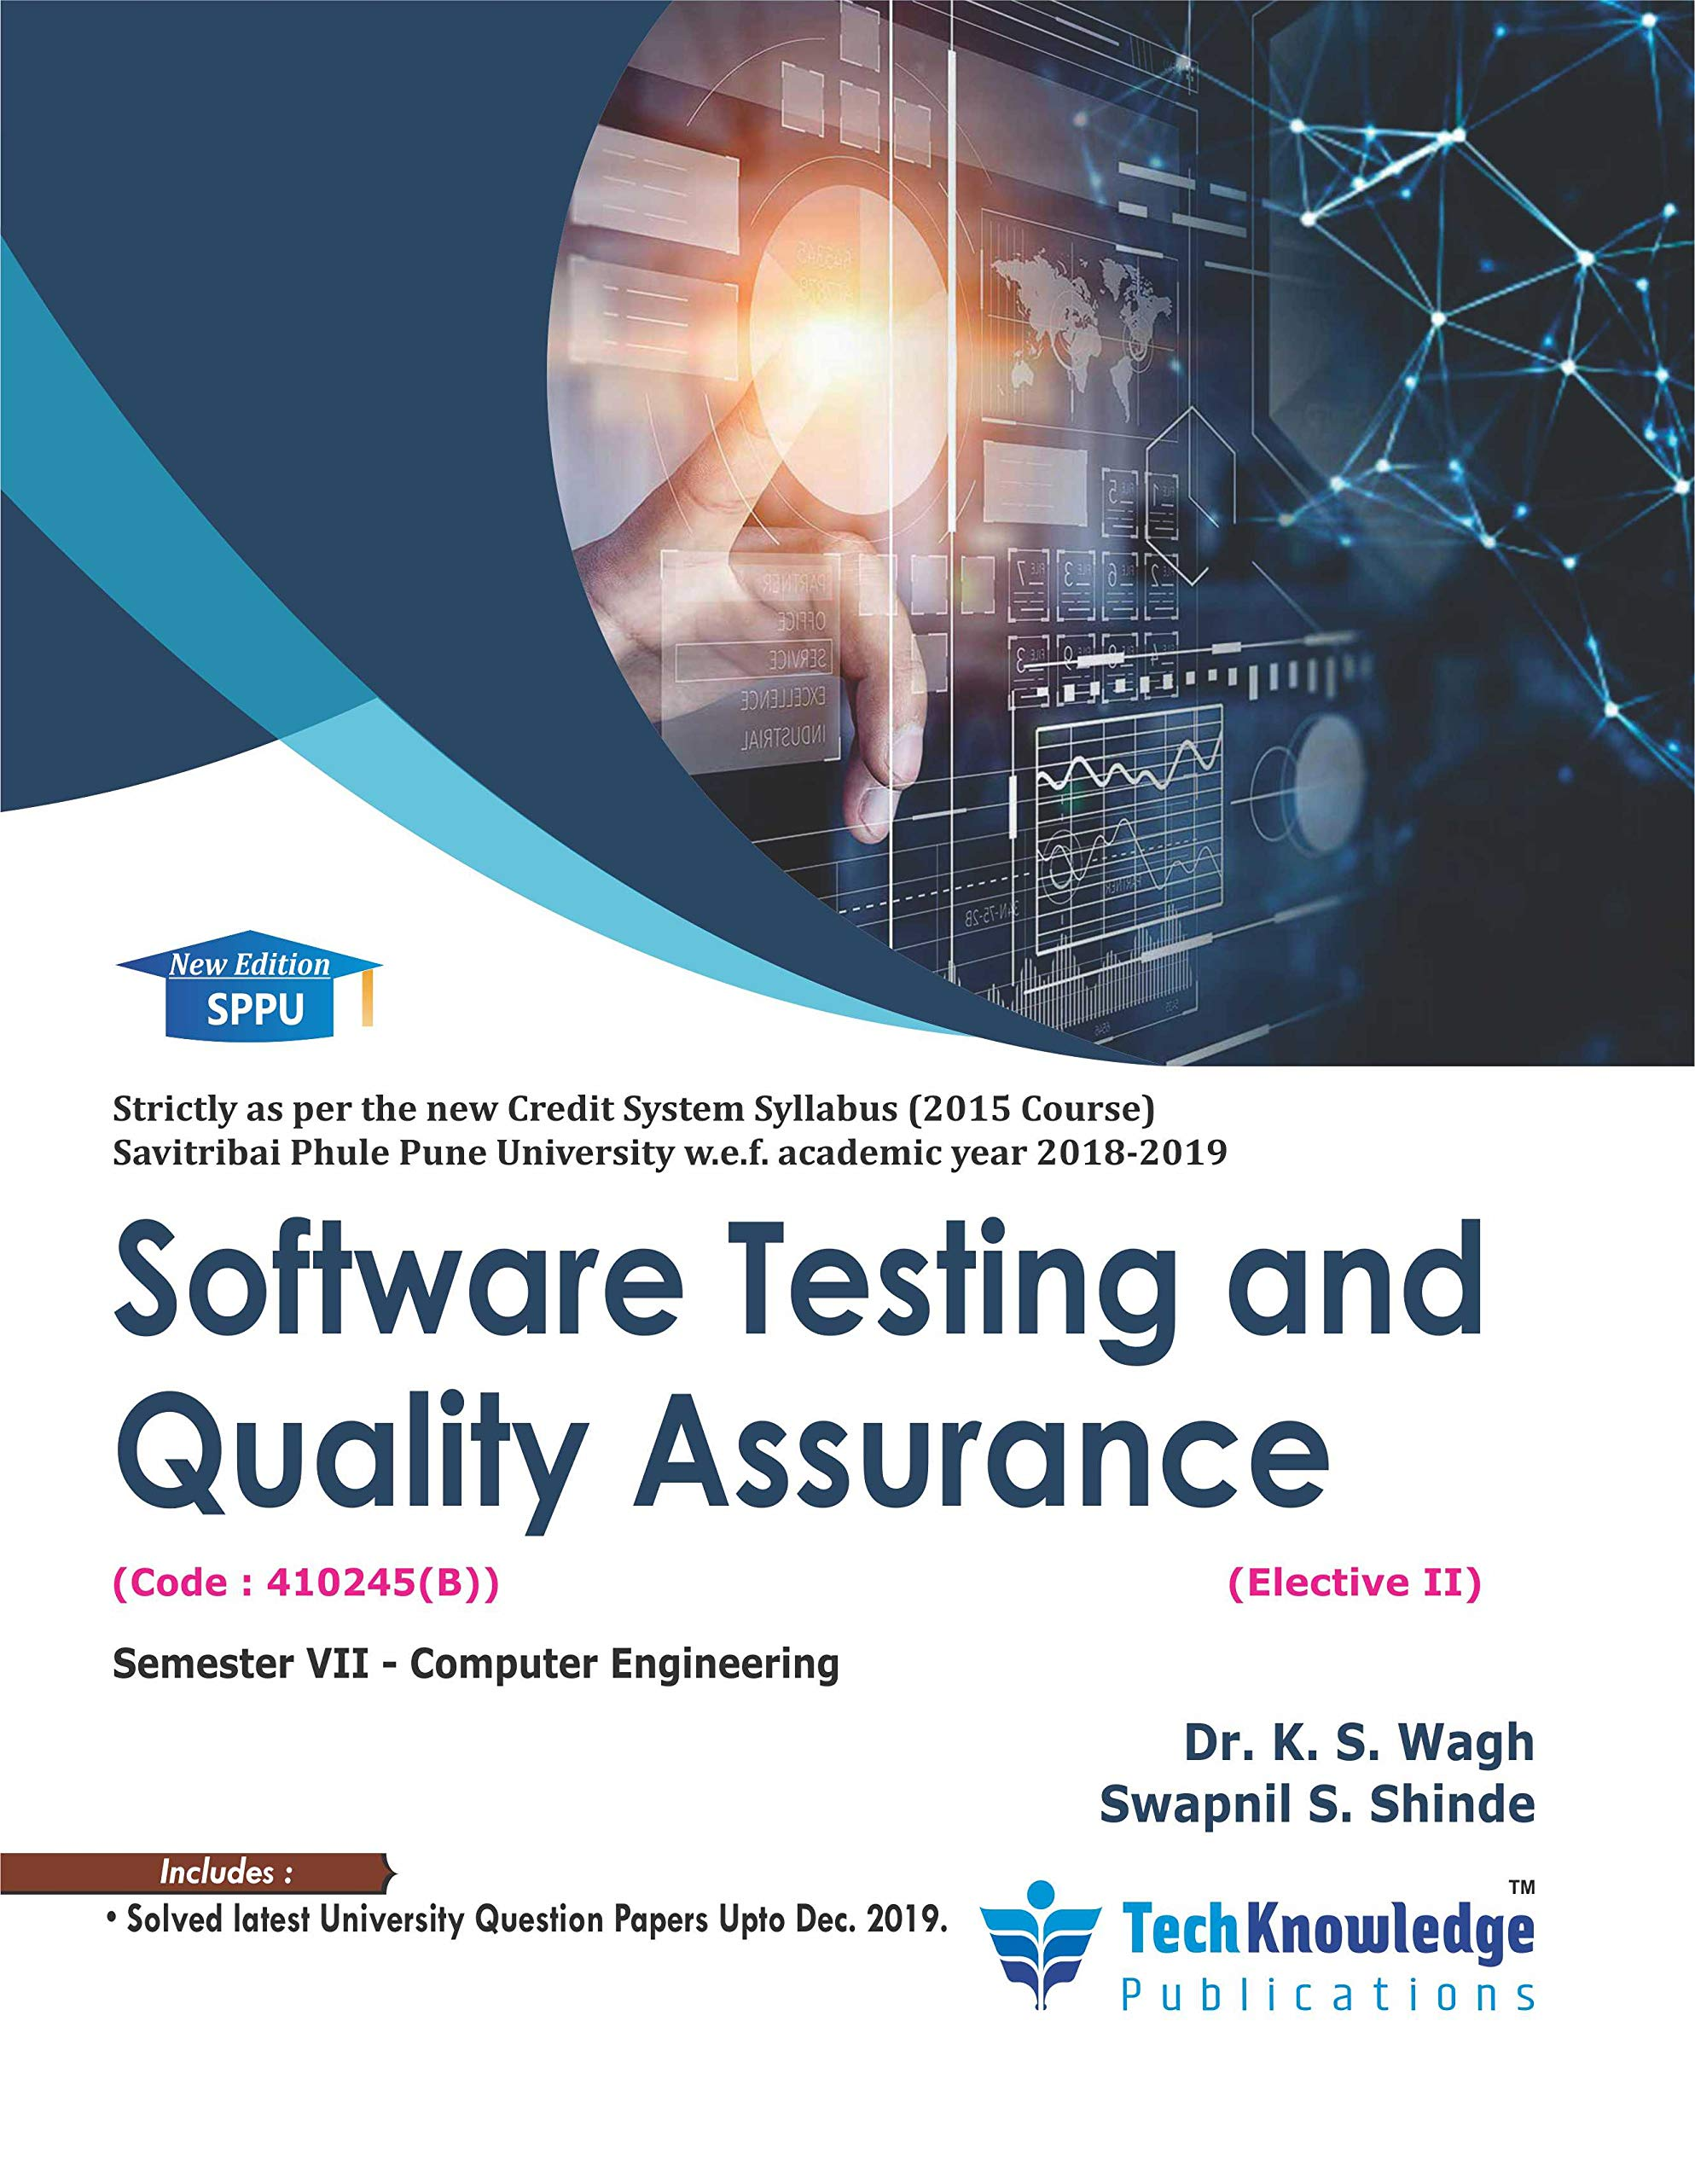 Software Testing and Quality Assurance For SPPU B.E. Computer Engineering Sem 7